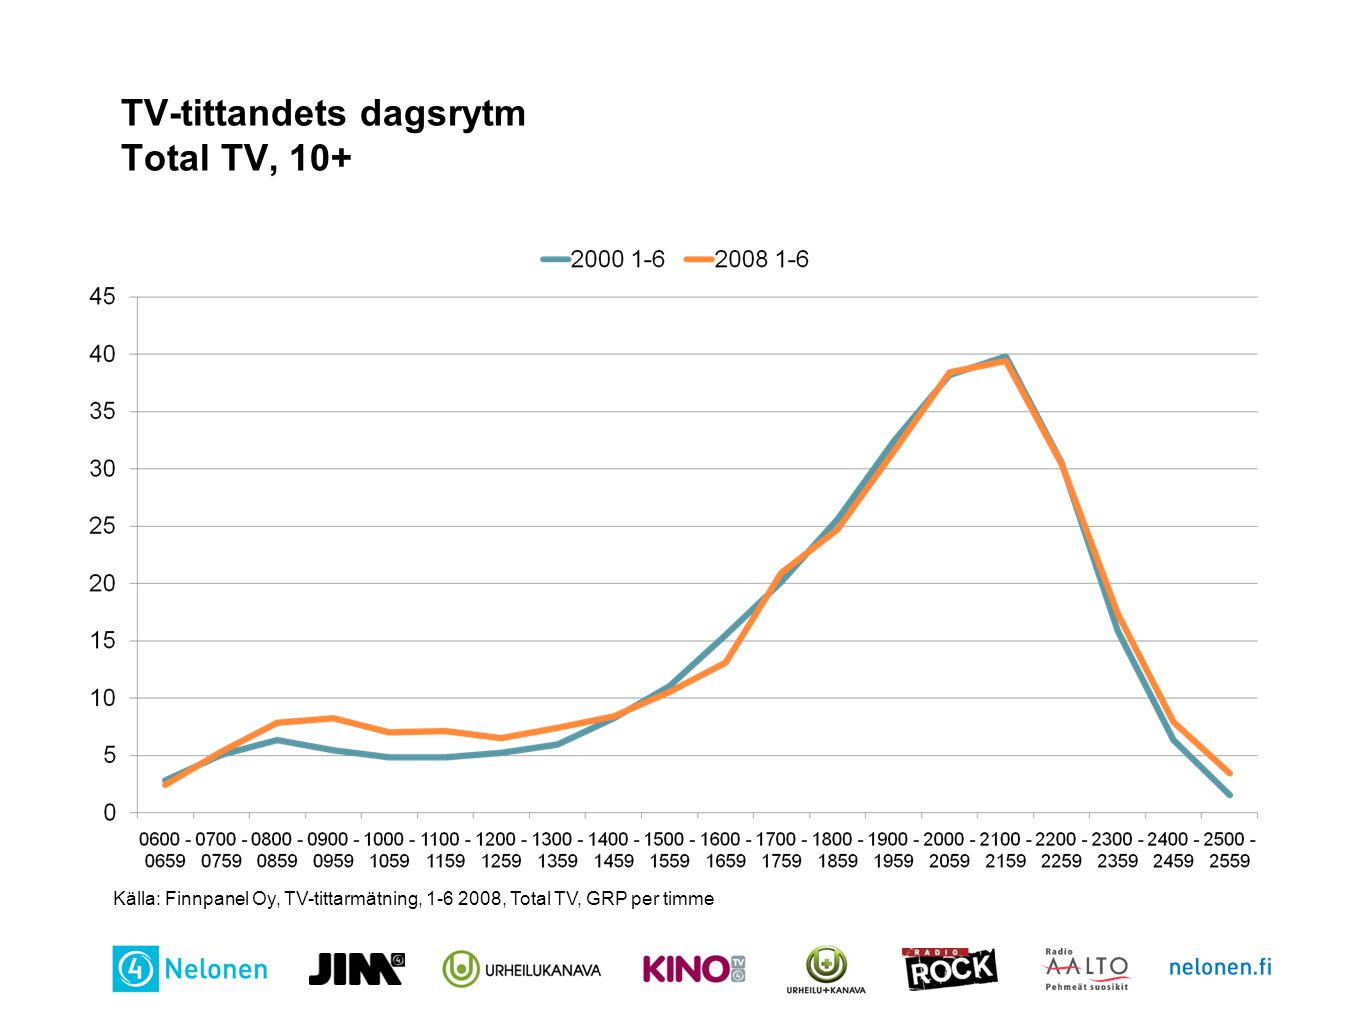 TV-tittandets dagsrytm Total TV, 10+